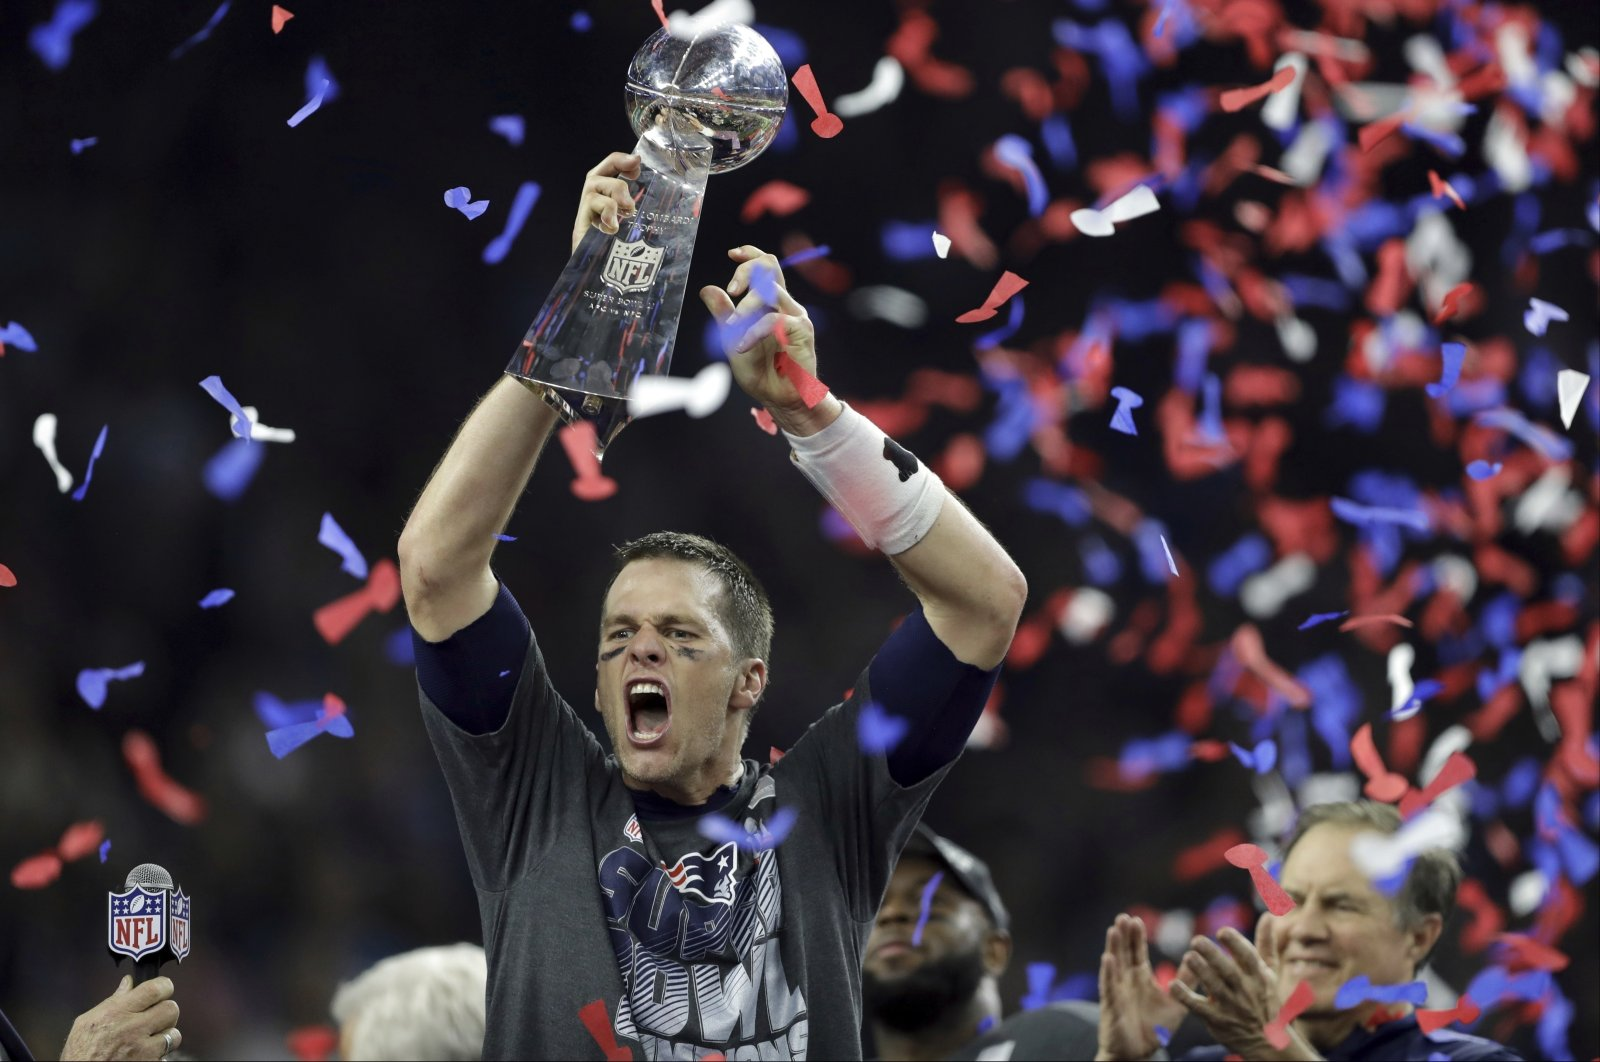 In this file photo, New England Patriots' Tom Brady raises the Vince Lombardi Trophy after defeating the Atlanta Falcons in overtime at the NFL Super Bowl 51 football game in Houston, Texas, Feb. 5, 2017. (AP Photo)